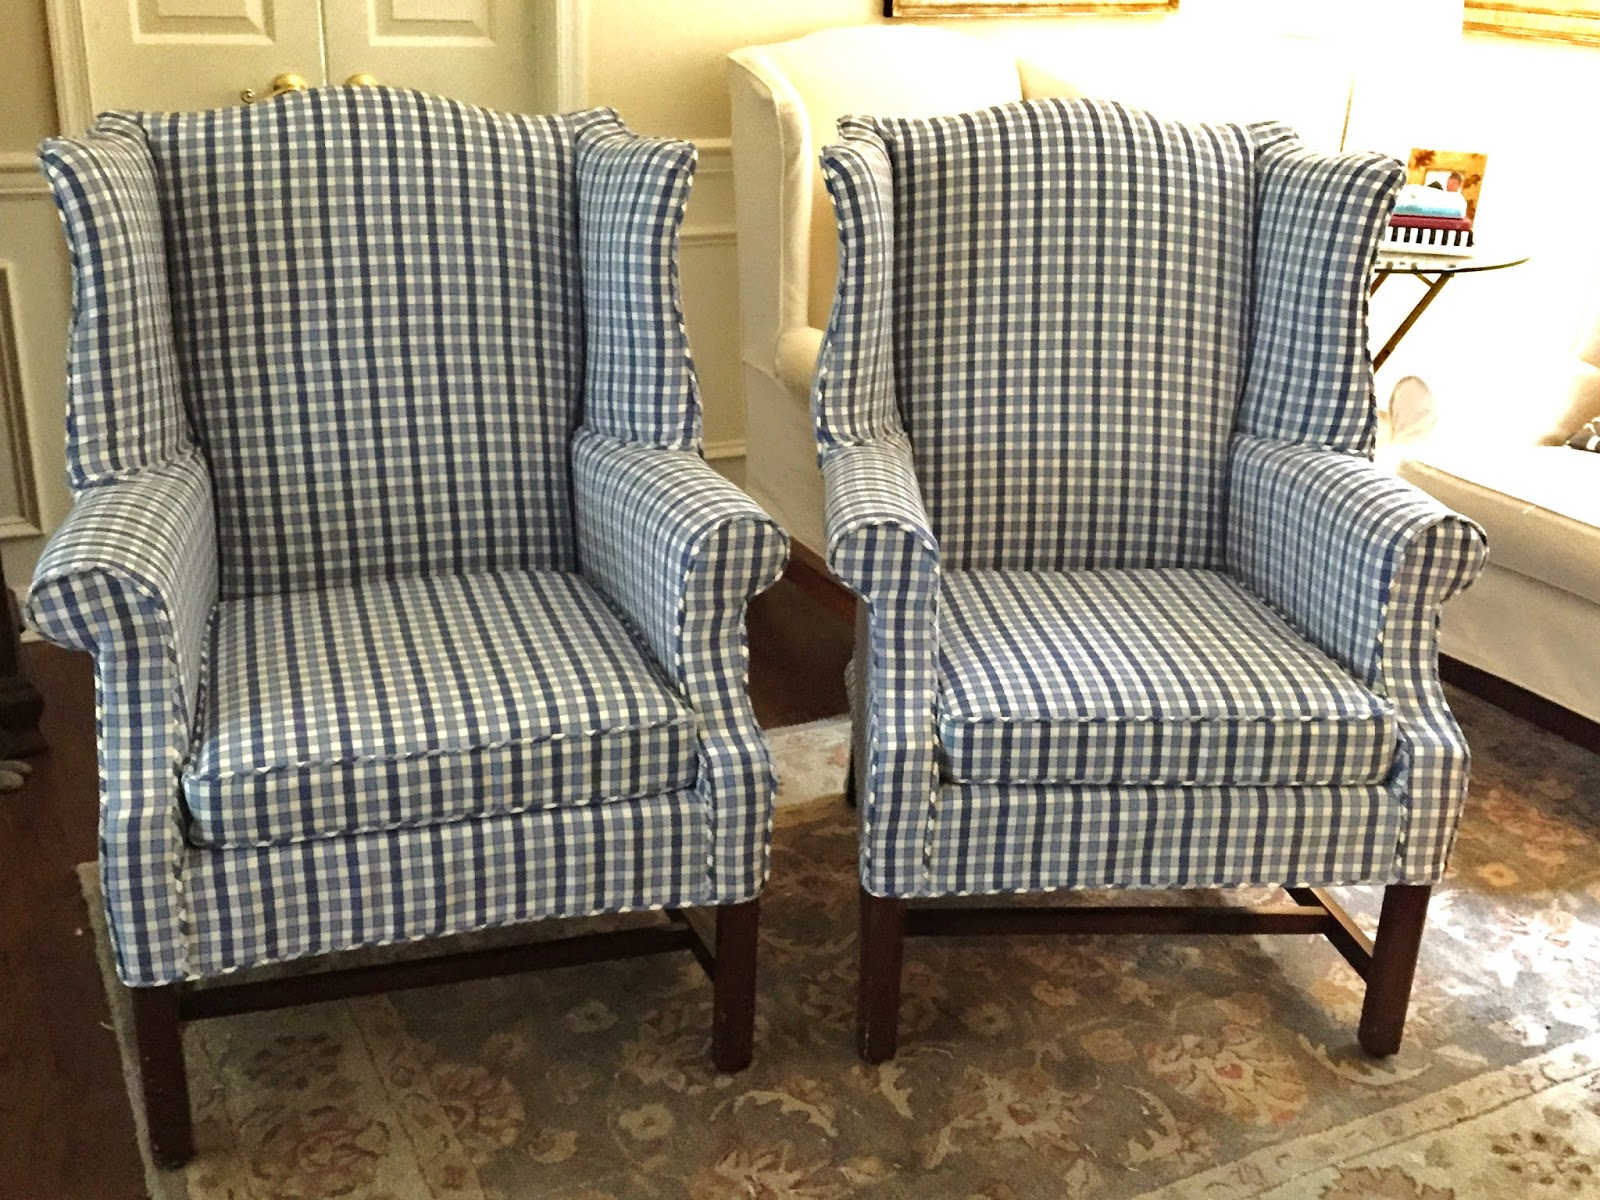 Delicieux It Never Ceases To Amaze Me How Many Iterations There Can Be Of The Humble Wing  Chair. These Are Rather Curvy.